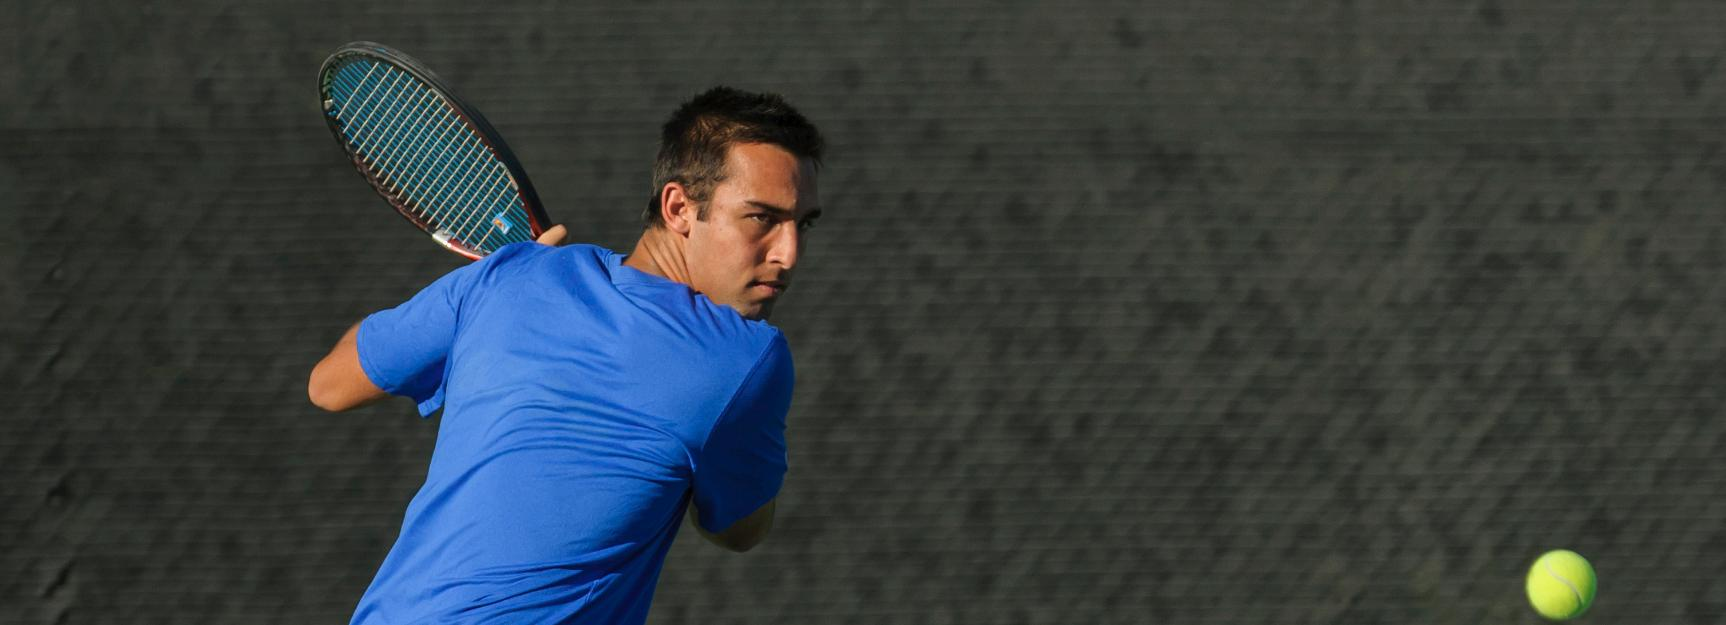 UCSB Defeated by No. 71 Nevada, 5-2